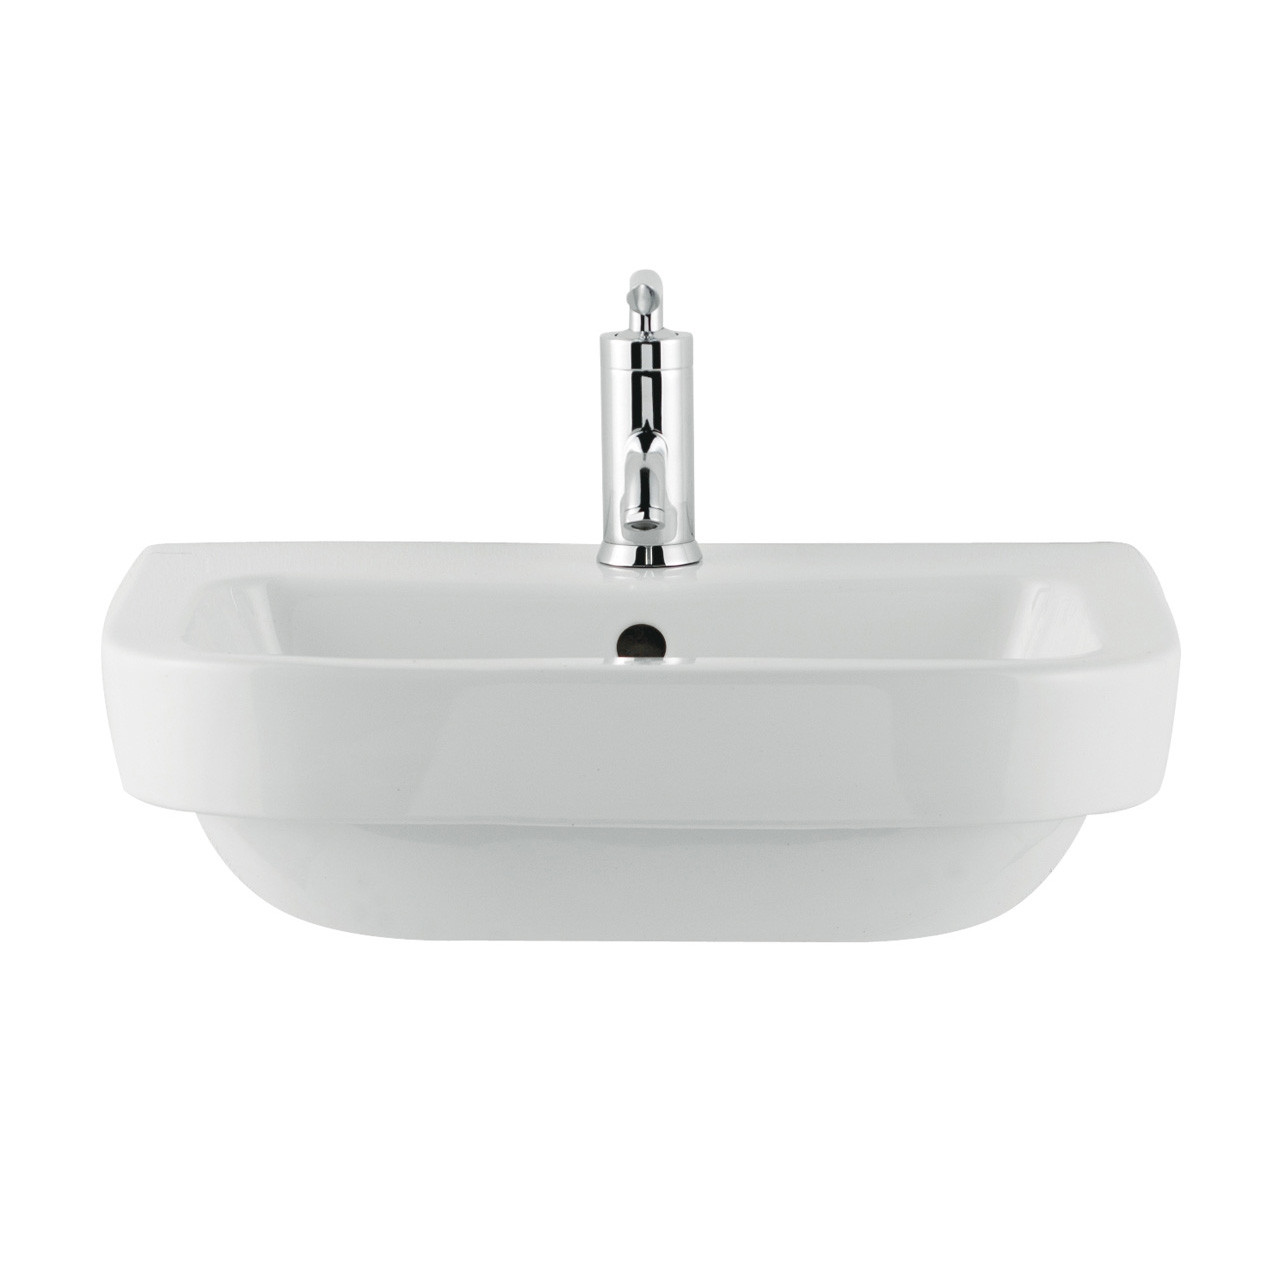 Premier White Jenay 520mm Semi Recessed Basin - LALIWH151